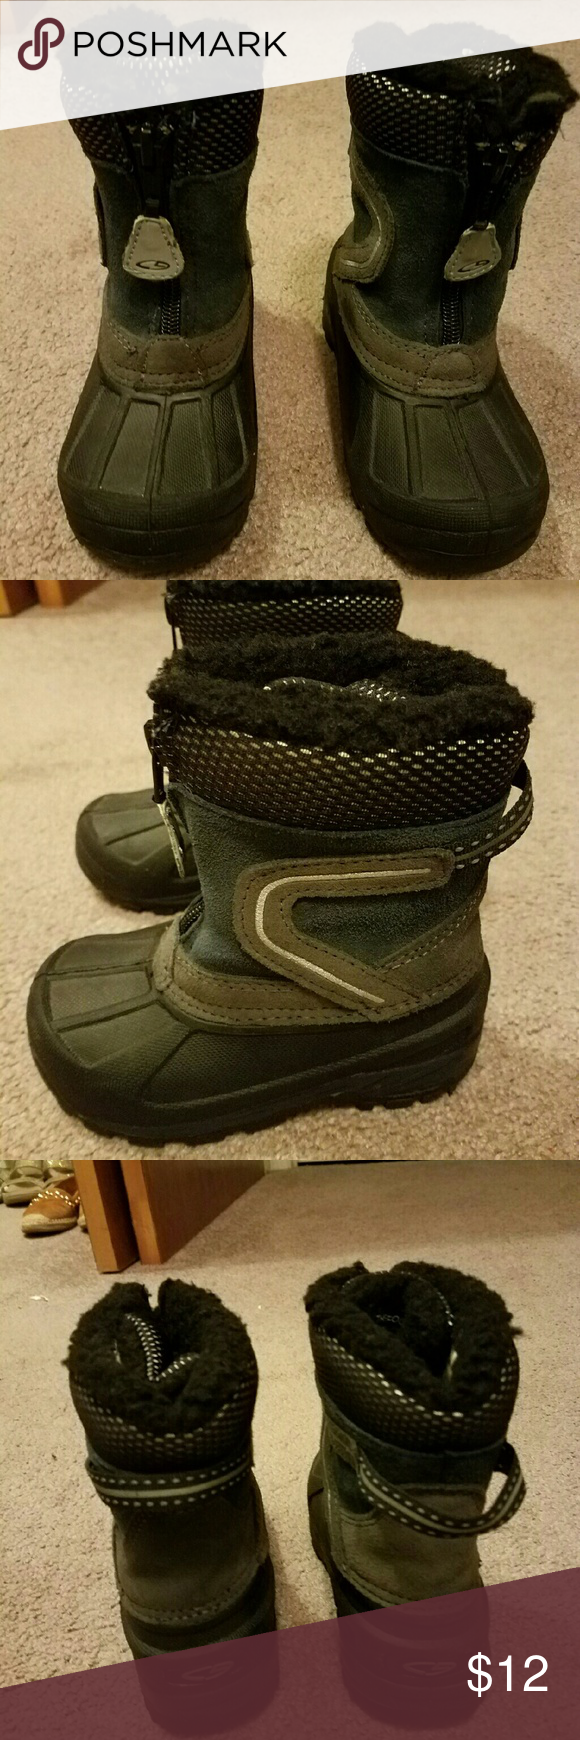 Target toddler boys snow boots size 8 Worn once.  Fantastic condition.  Great for snow says. Target Shoes Rain & Snow Boots